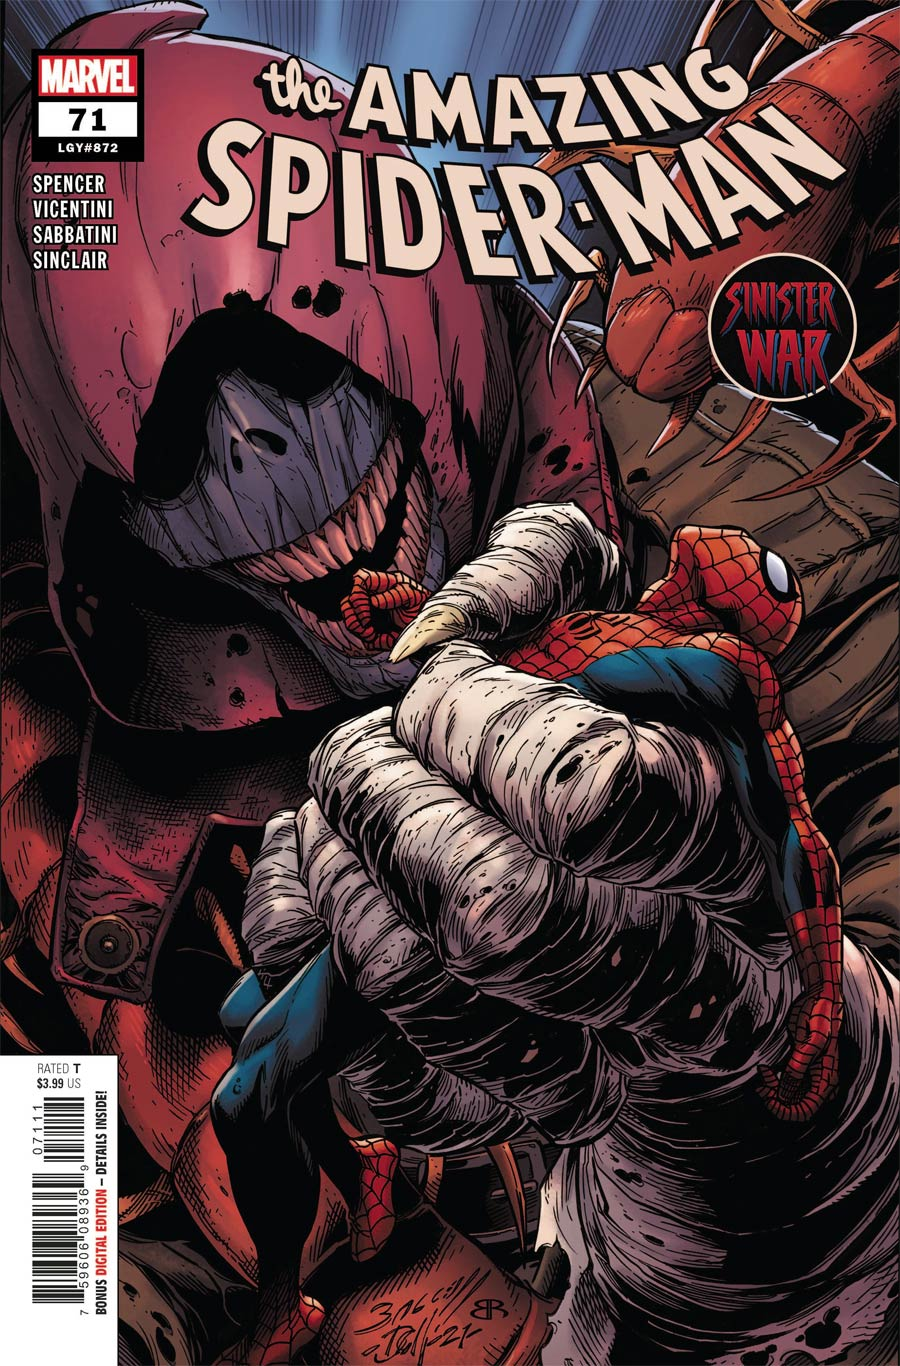 Amazing Spider-Man Vol 5 #71 Cover A Regular Mark Bagley Cover (Sinister War Tie-In)